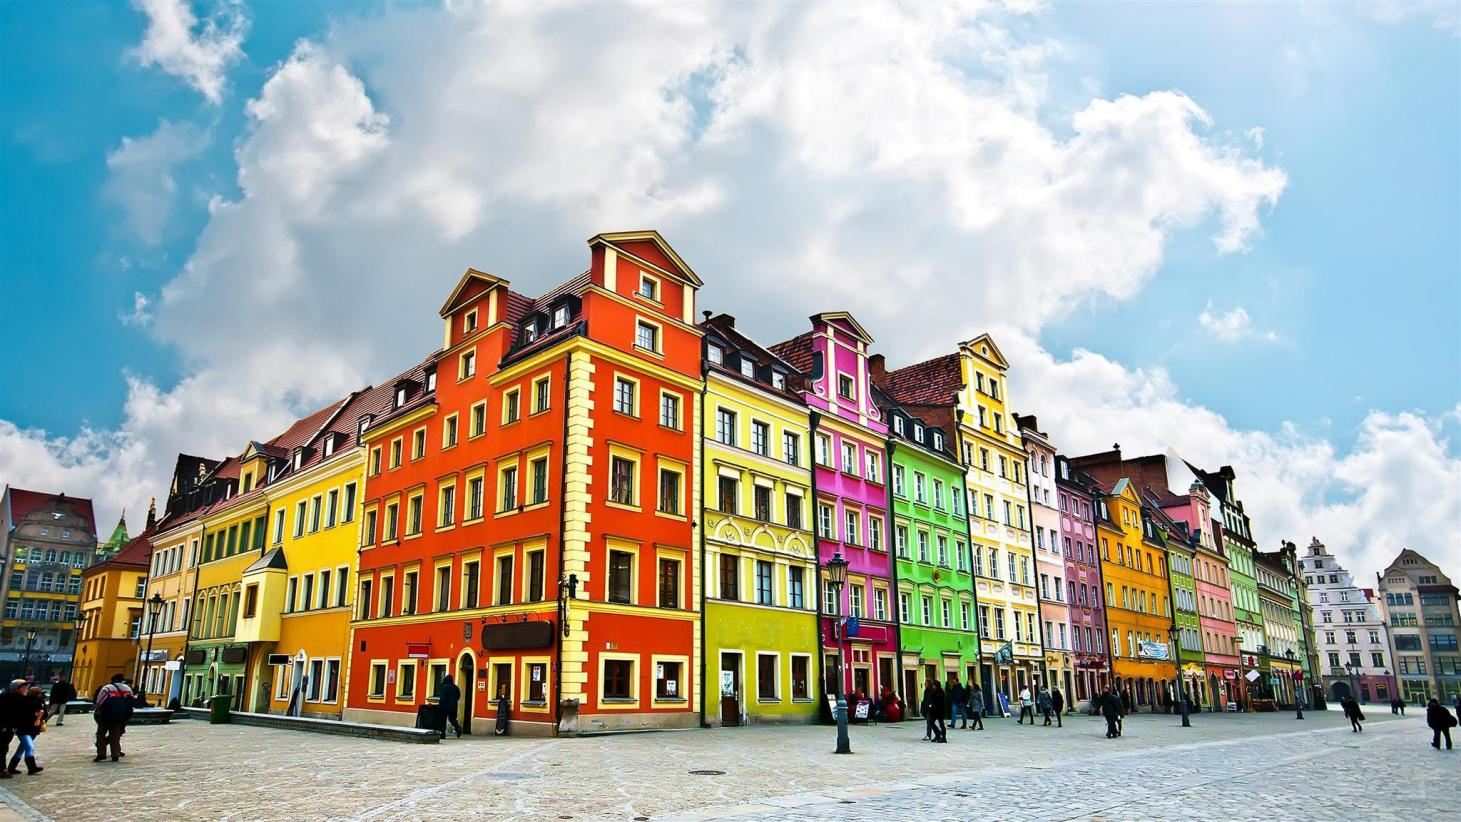 10 Best Wroclaw Hotels: HD Photos + Reviews of Hotels in Wroclaw ...